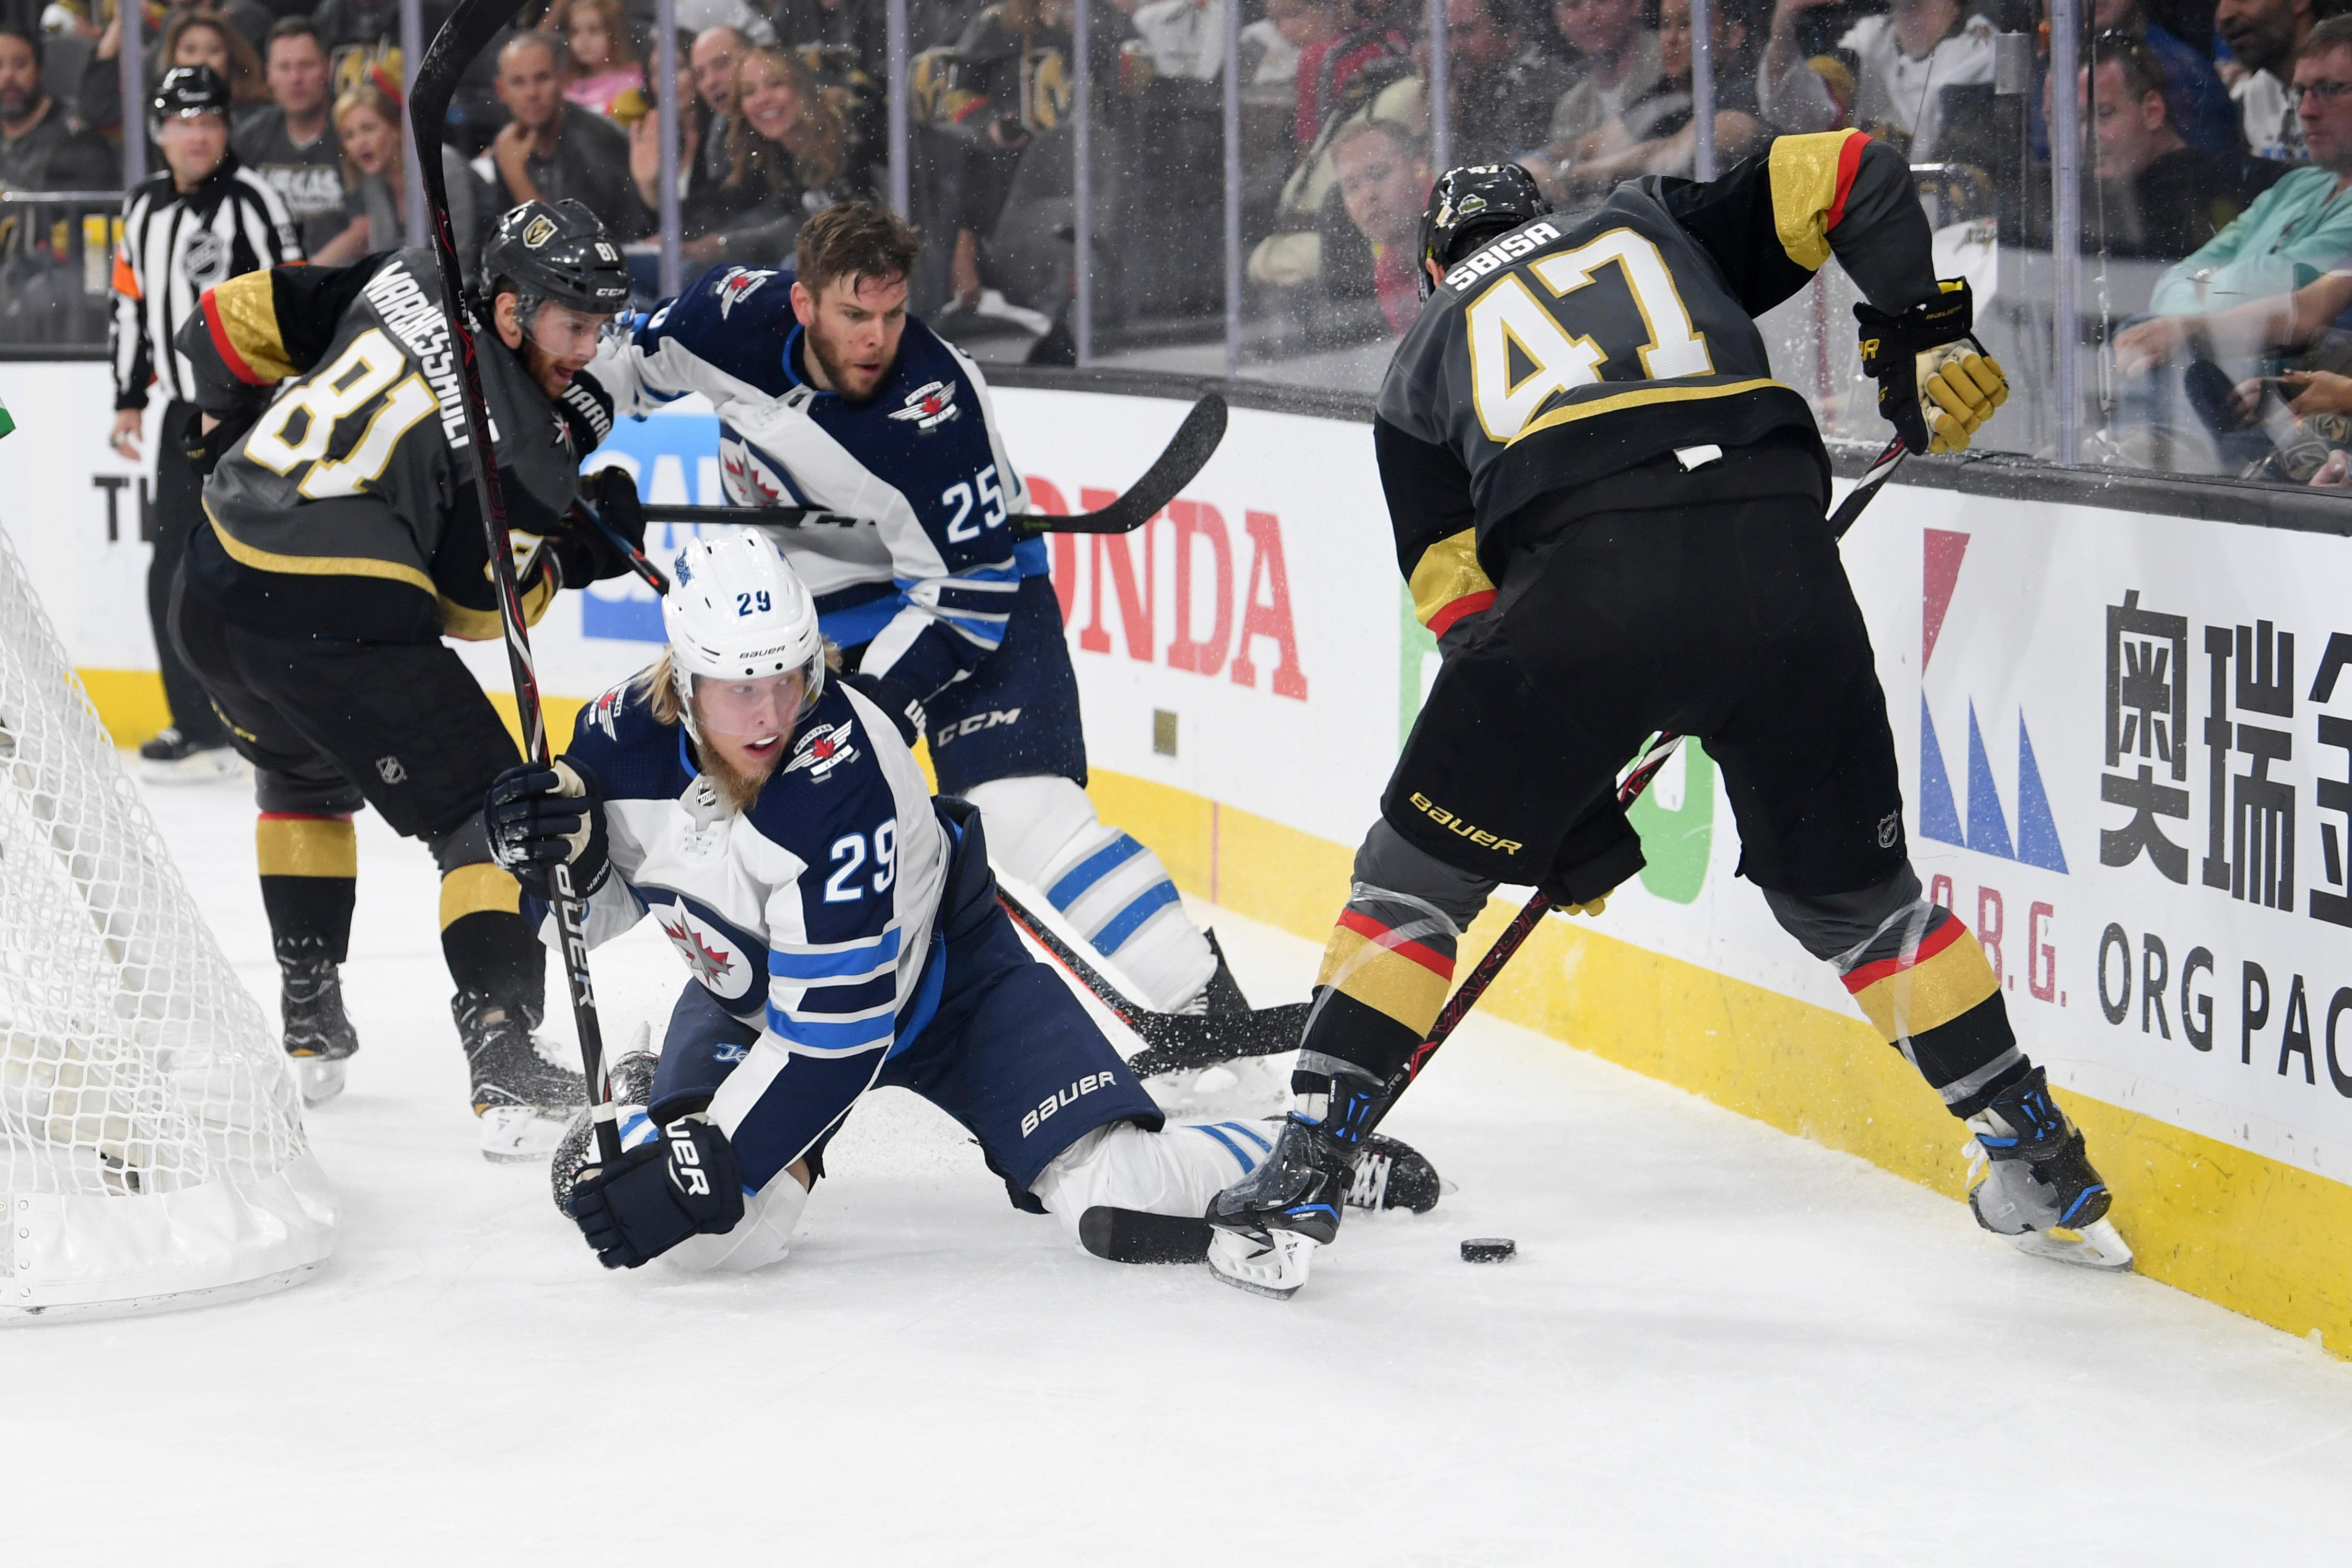 Winnipeg Jets right wing Patrik Laine (29) hits the ice as Vegas Golden Knights defenseman Luca Sbisa (47) tries to clear the puck from behind his net during Game 4 of their NHL hockey Western Conference Final game Friday, May 18, 2018, at T-Mobile Arena. CREDIT: Sam Morris/Las Vegas News Bureau